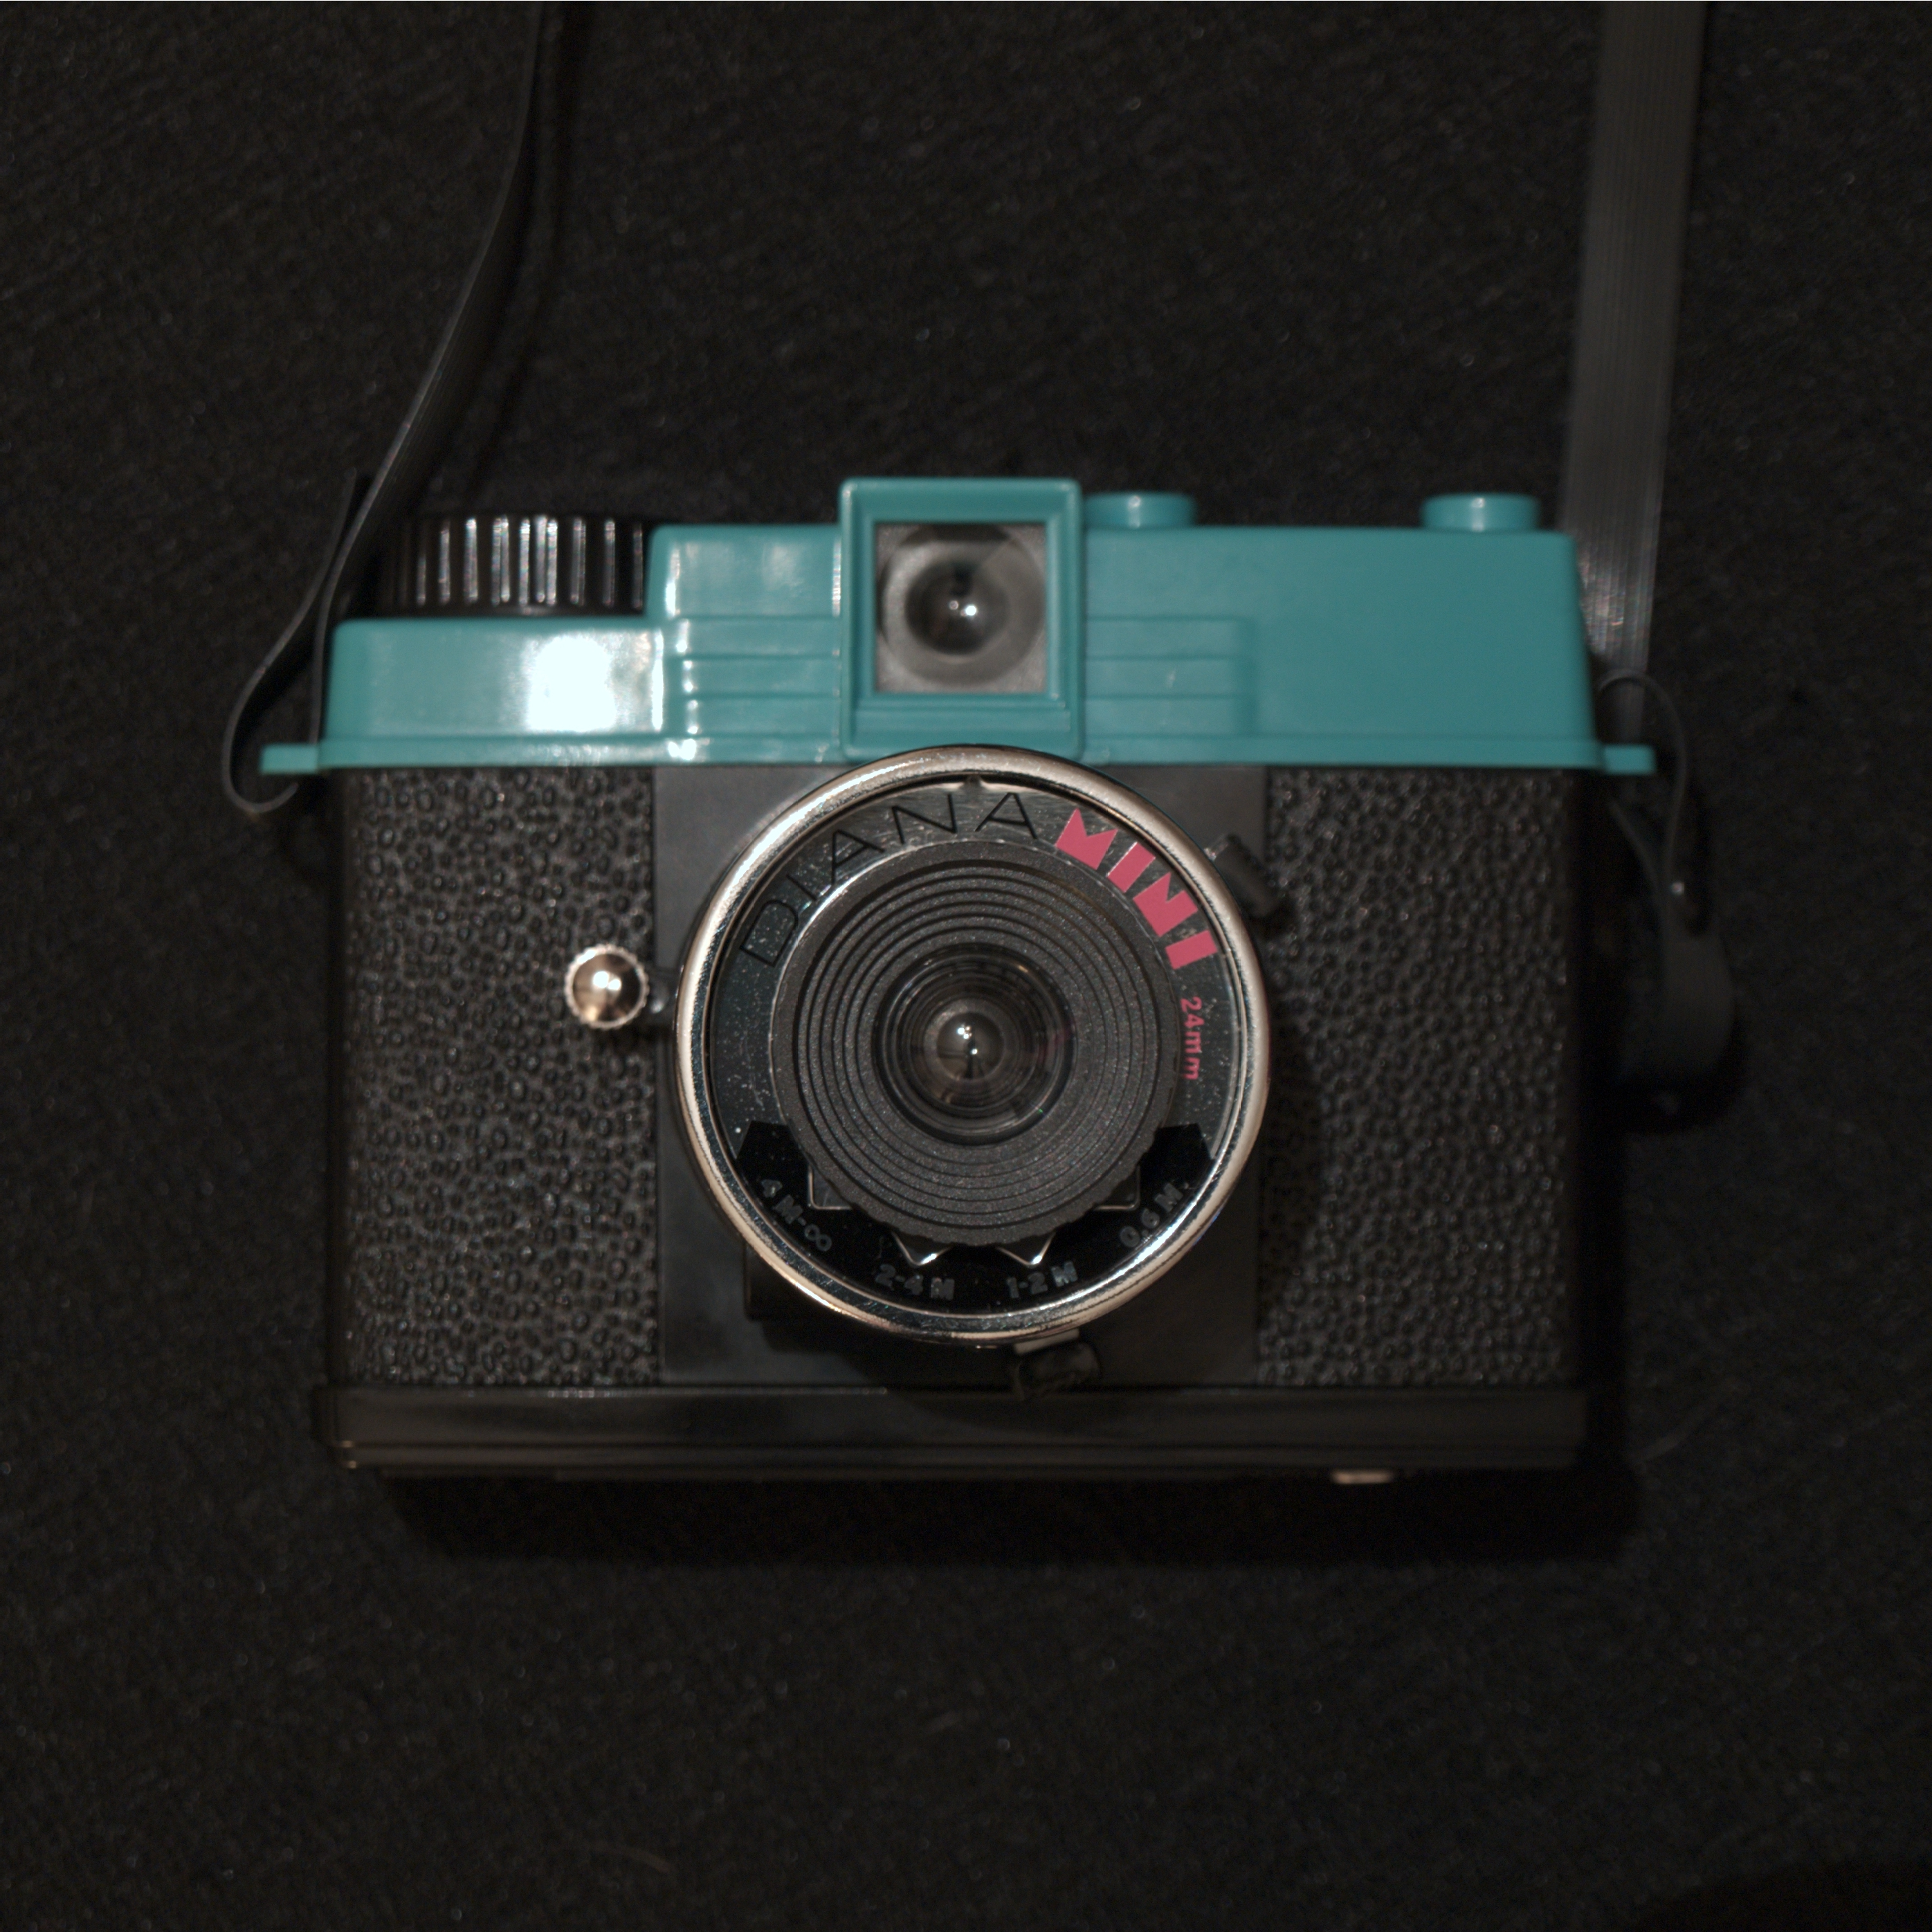 Diana Mini Camera - Wikipedia